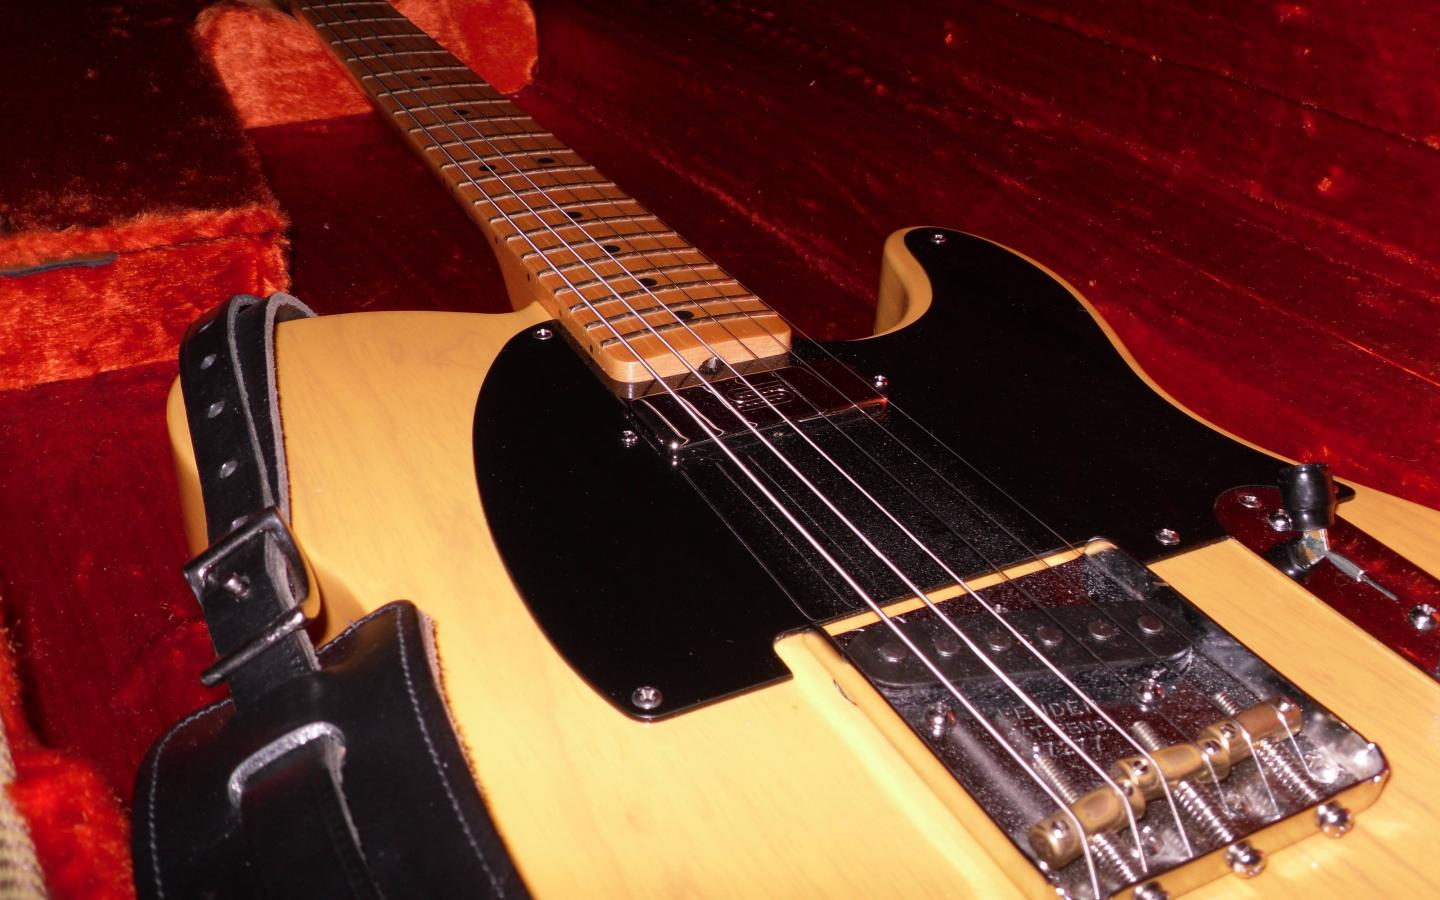 Guitars electric guitar     10153    High Quality and HD Wallpaper